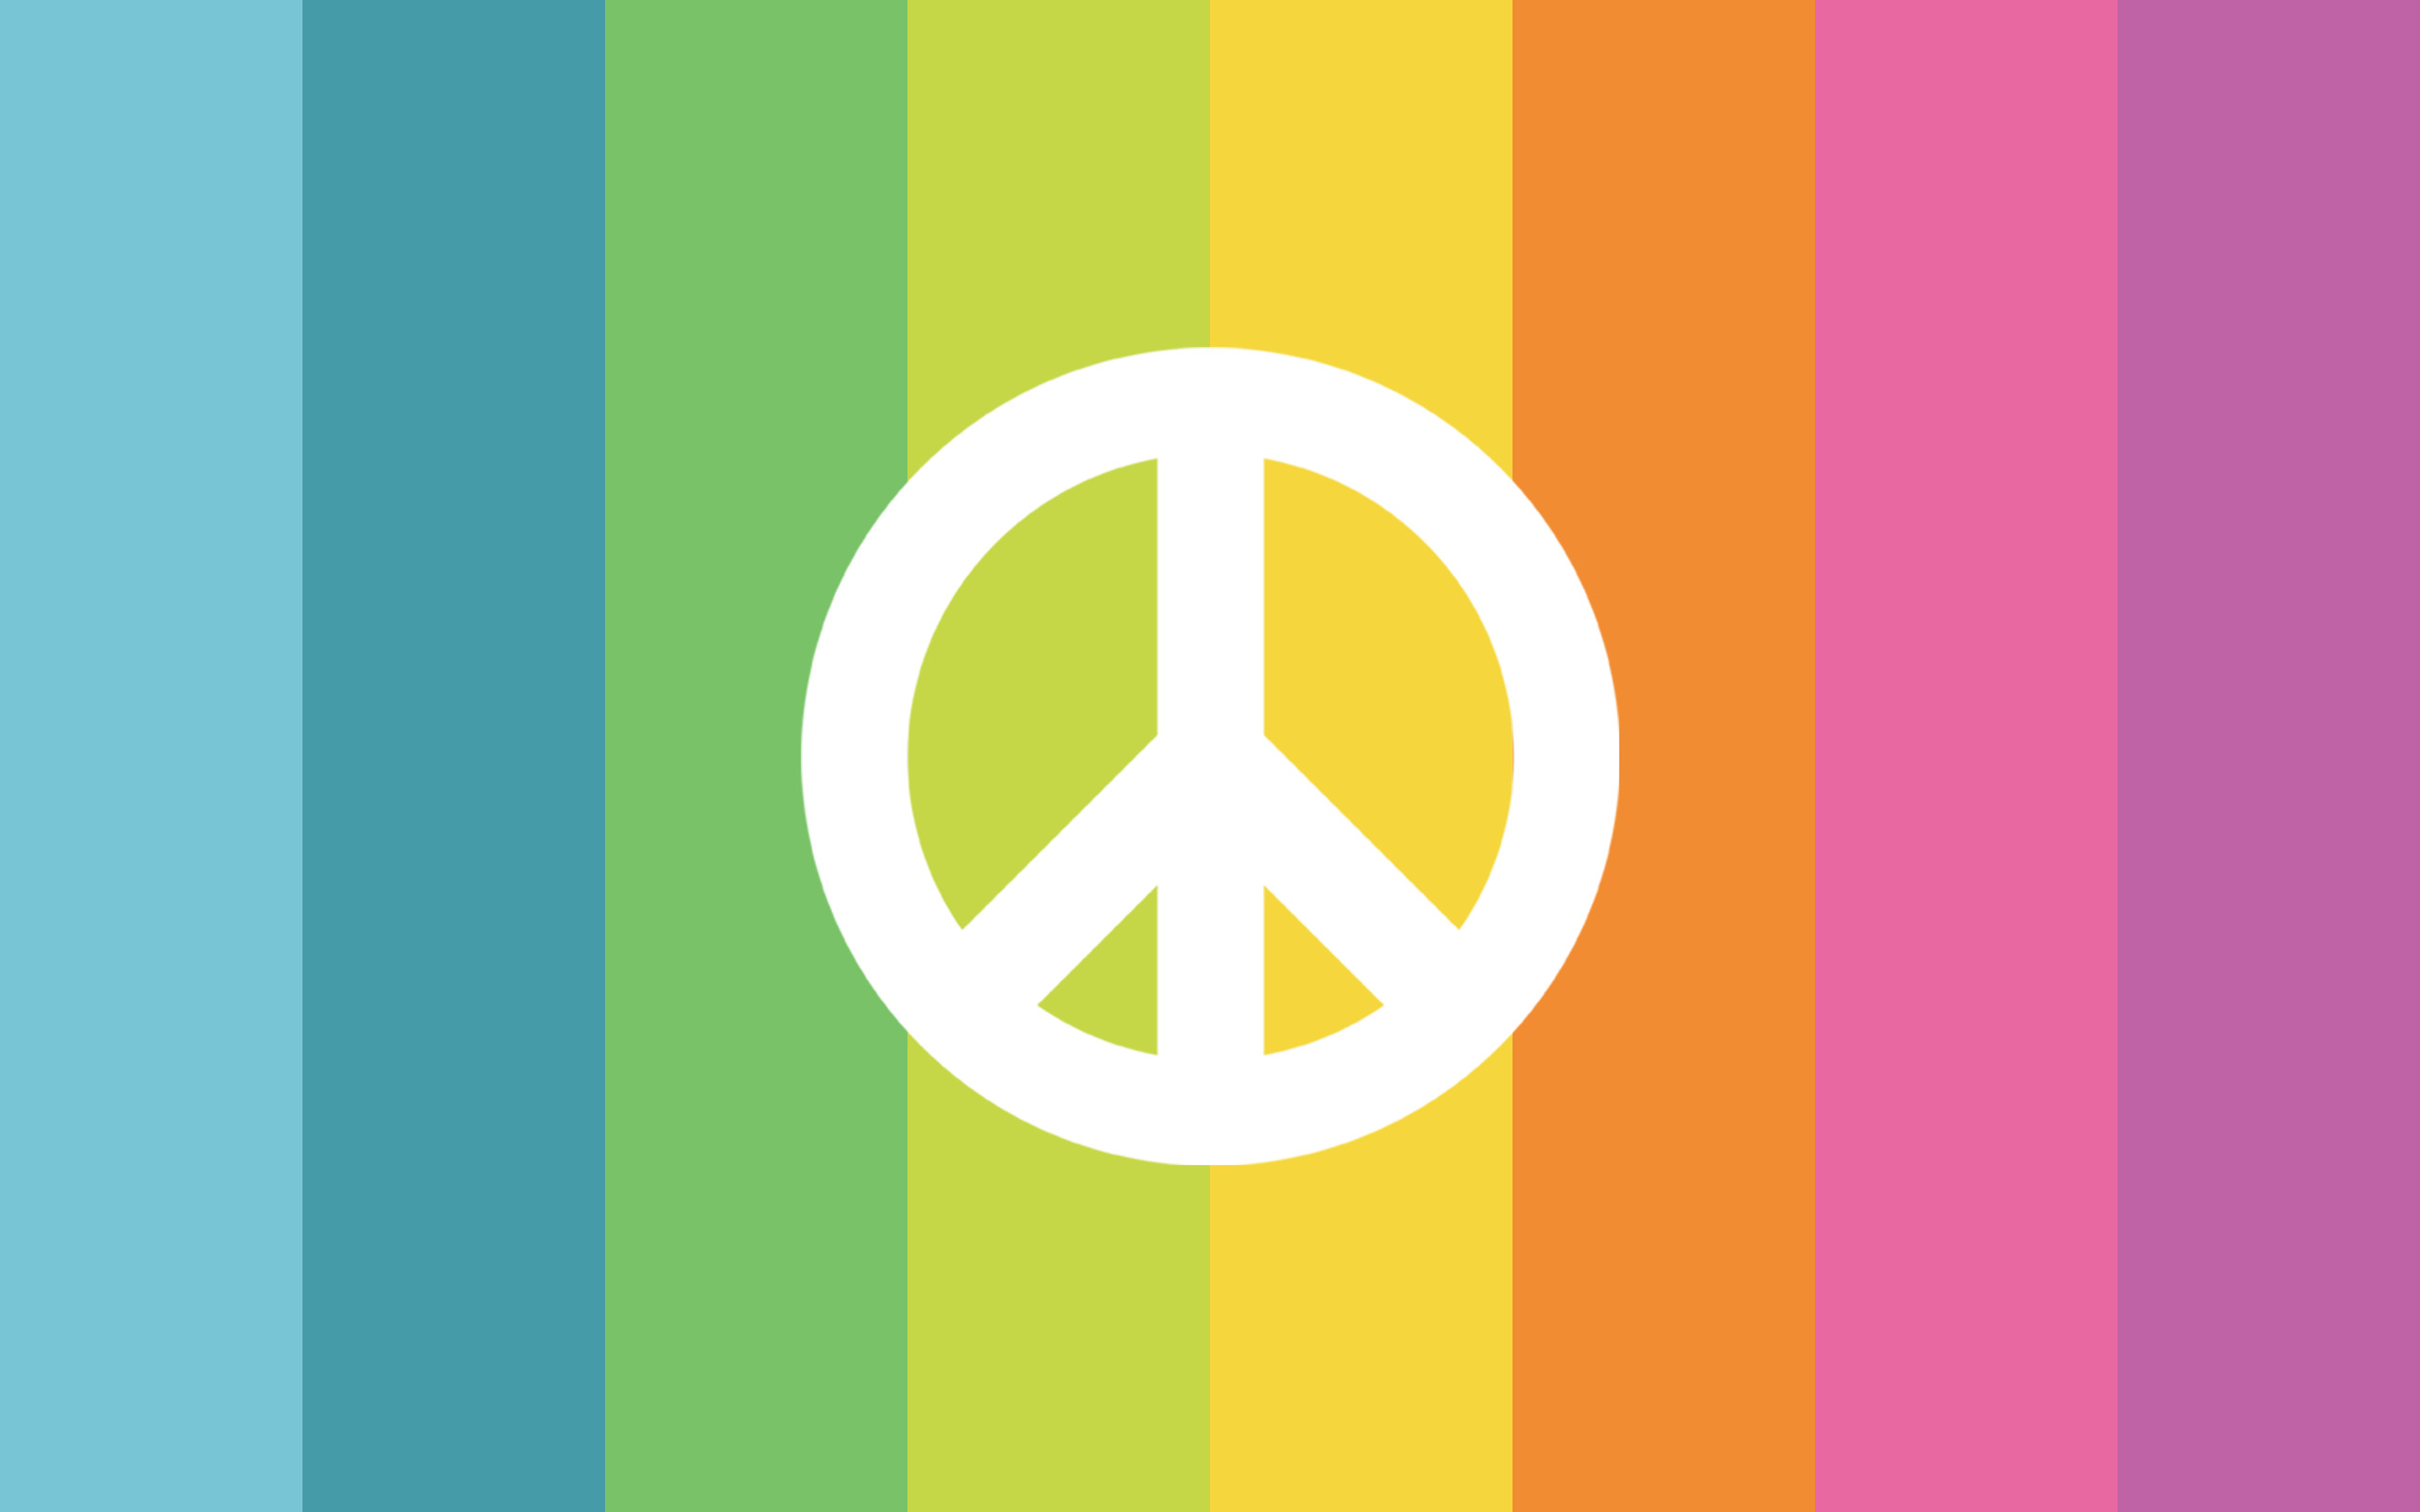 Colorful peace sign backgrounds 2560x1600 peace sign desktop backgrounds wallpaper cave download voltagebd Gallery